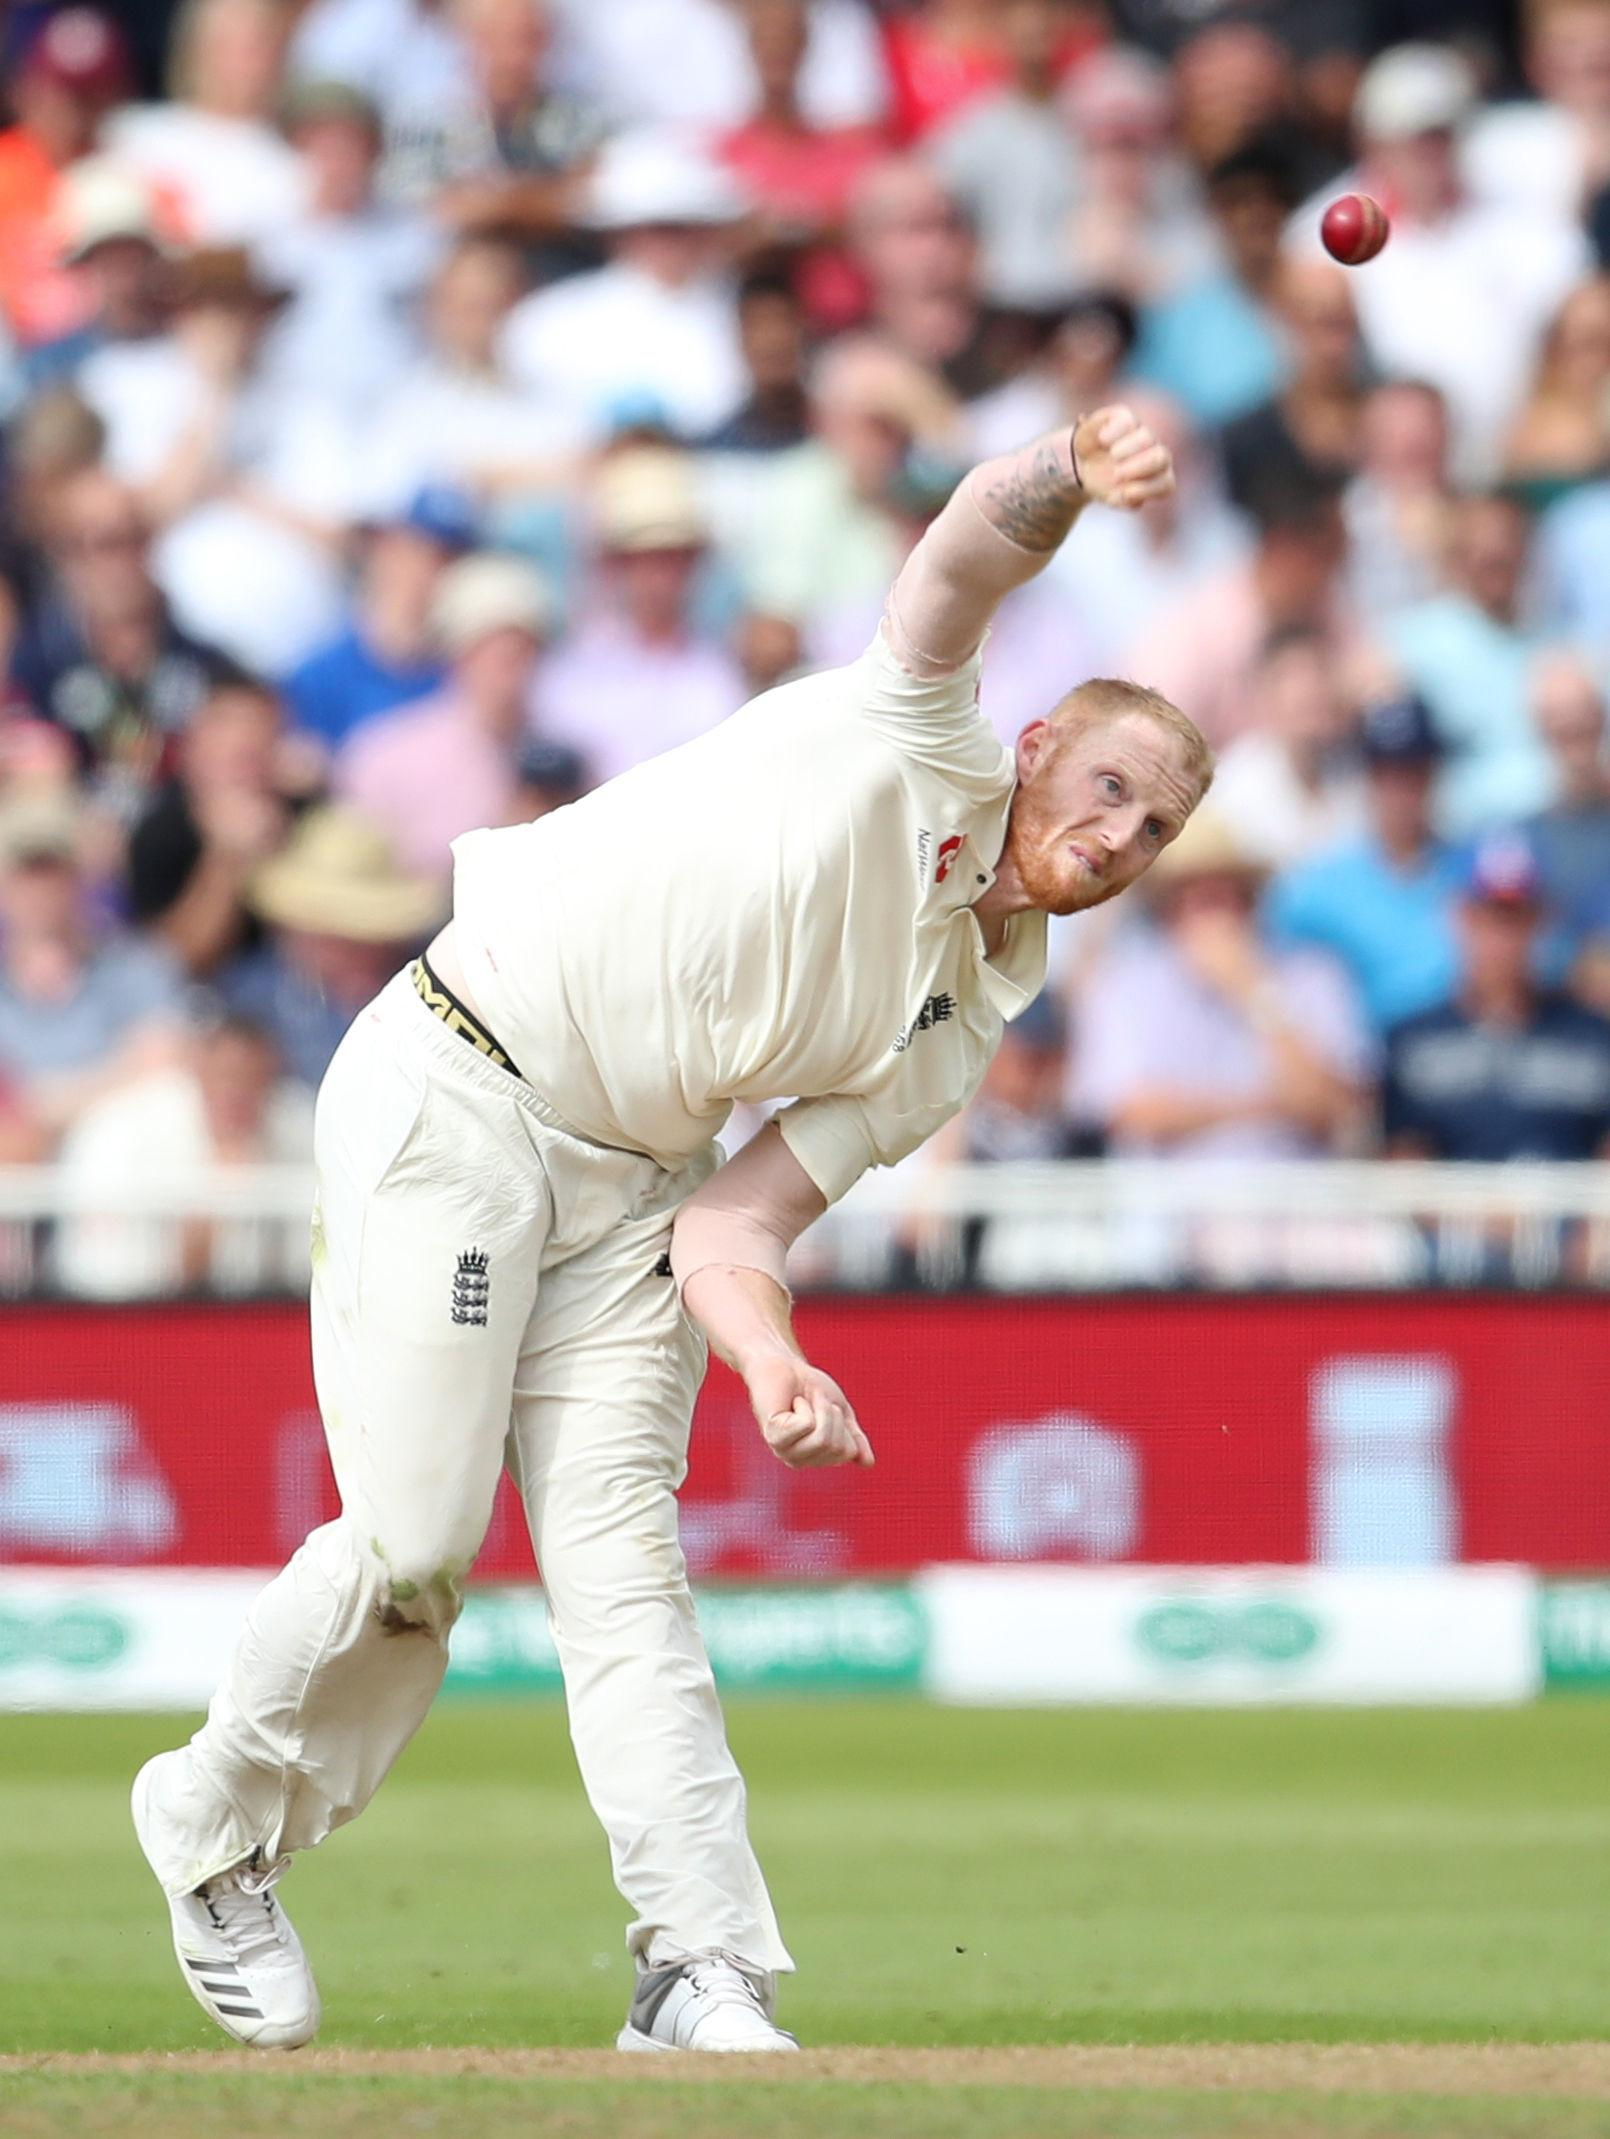 Stokes' bowling had its flaws as he failed to take a wicket